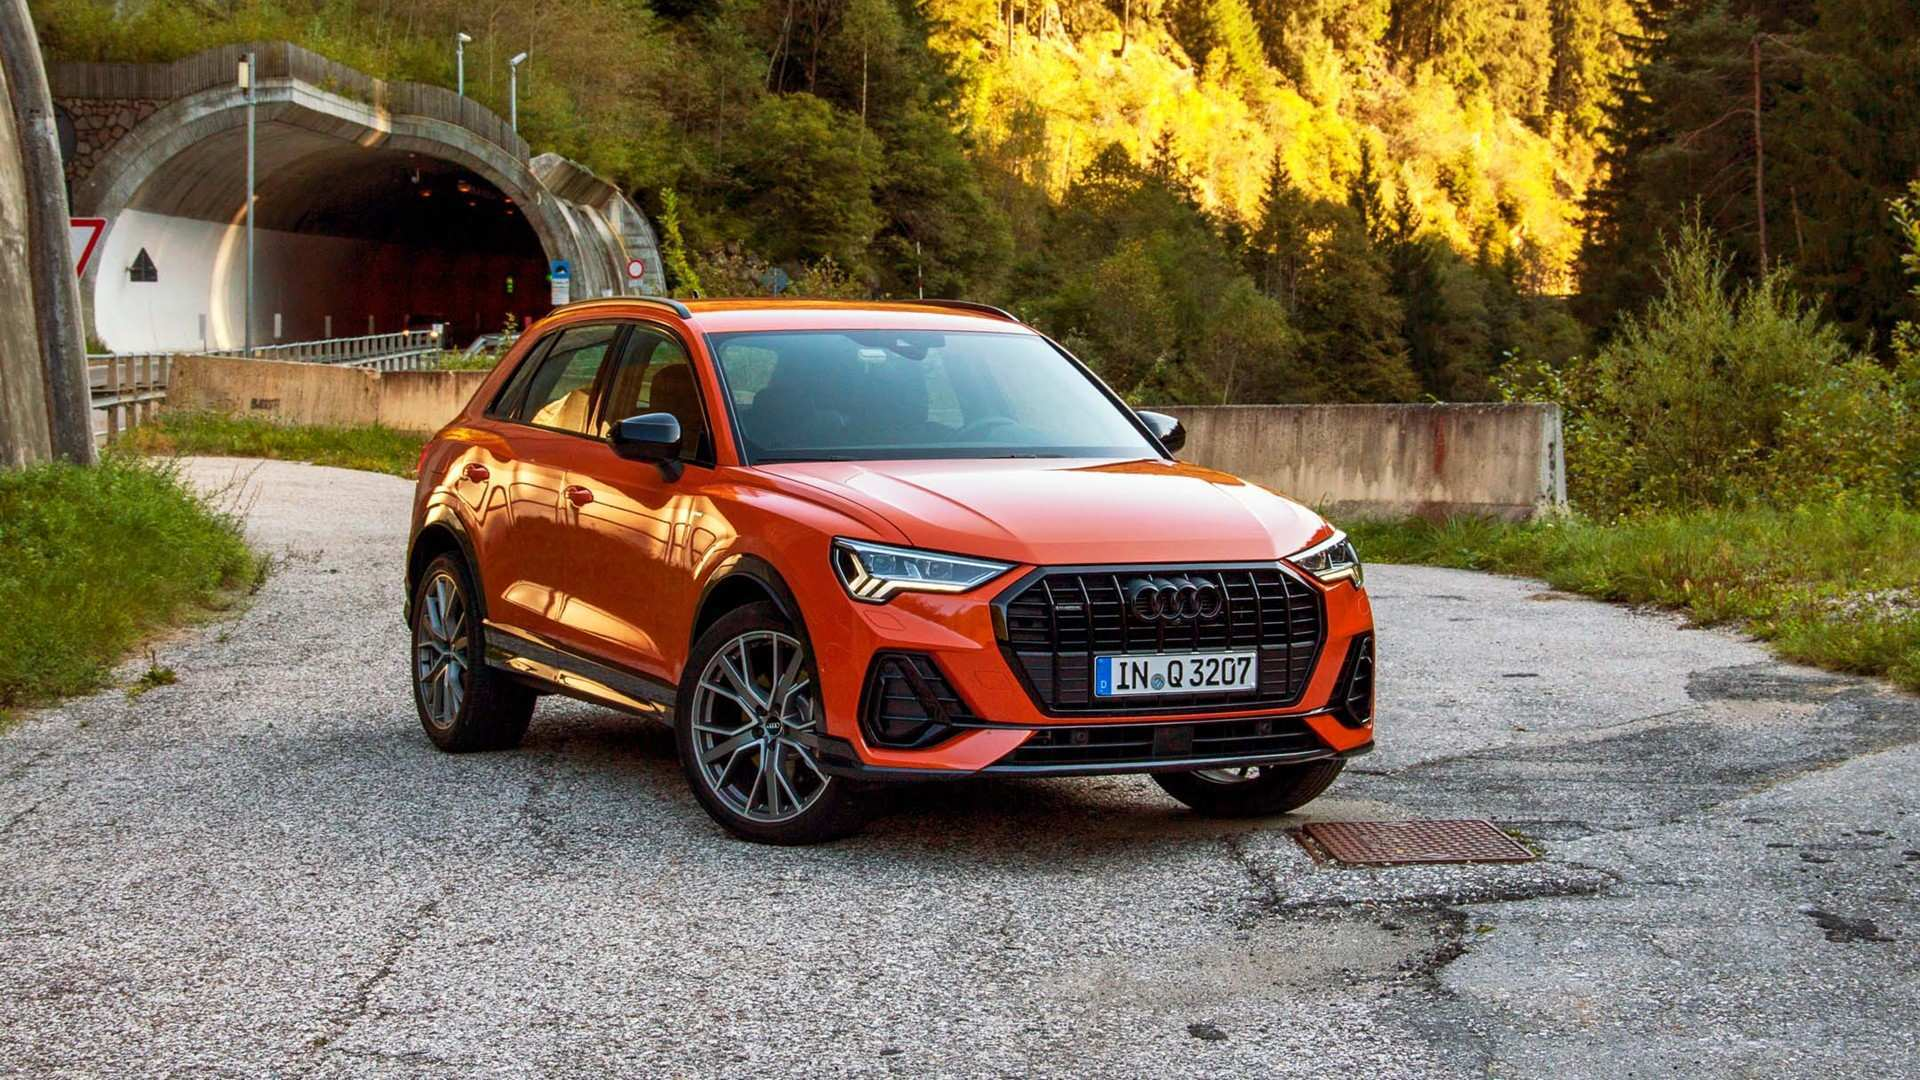 25 New New Release Date For 2019 Audi Q3 New Review Wallpaper for New Release Date For 2019 Audi Q3 New Review